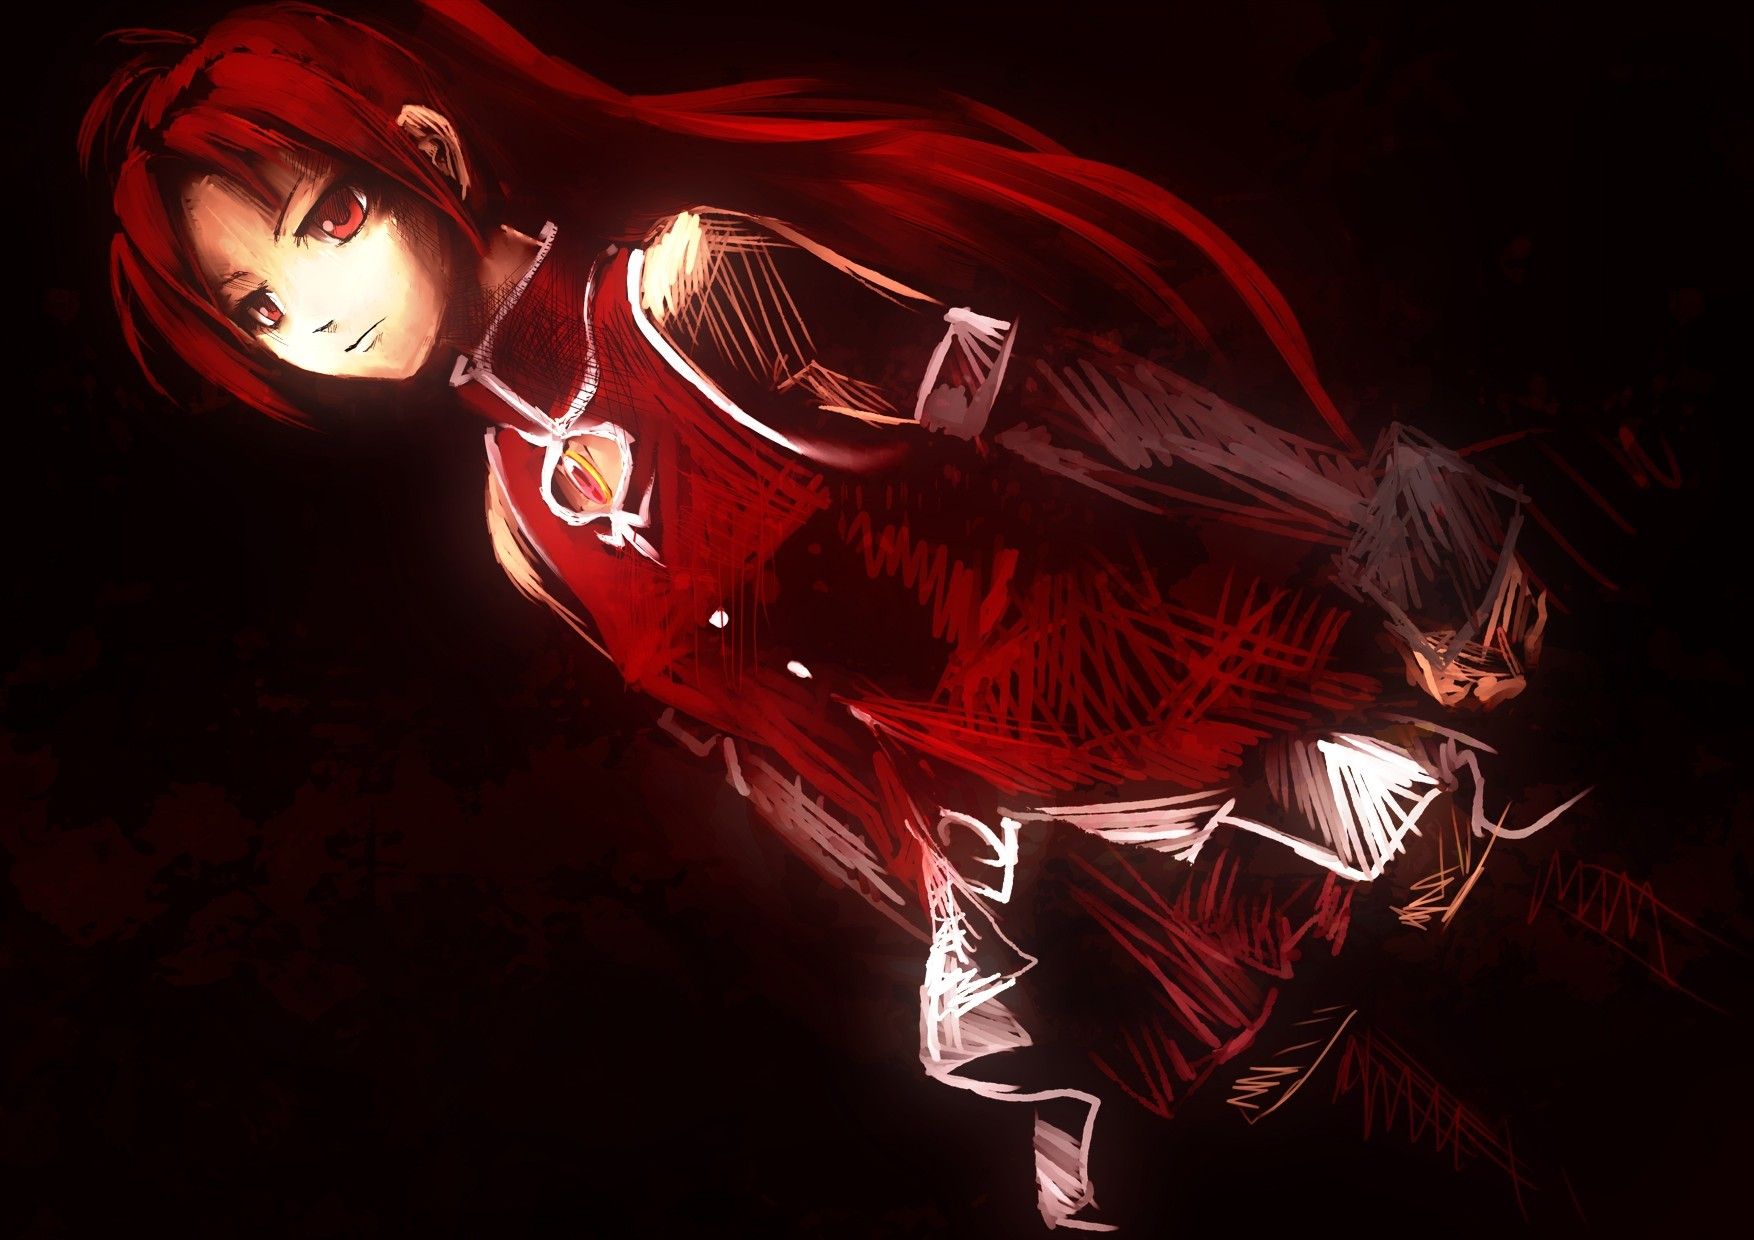 redheads red eyes mahou HD Wallpaper